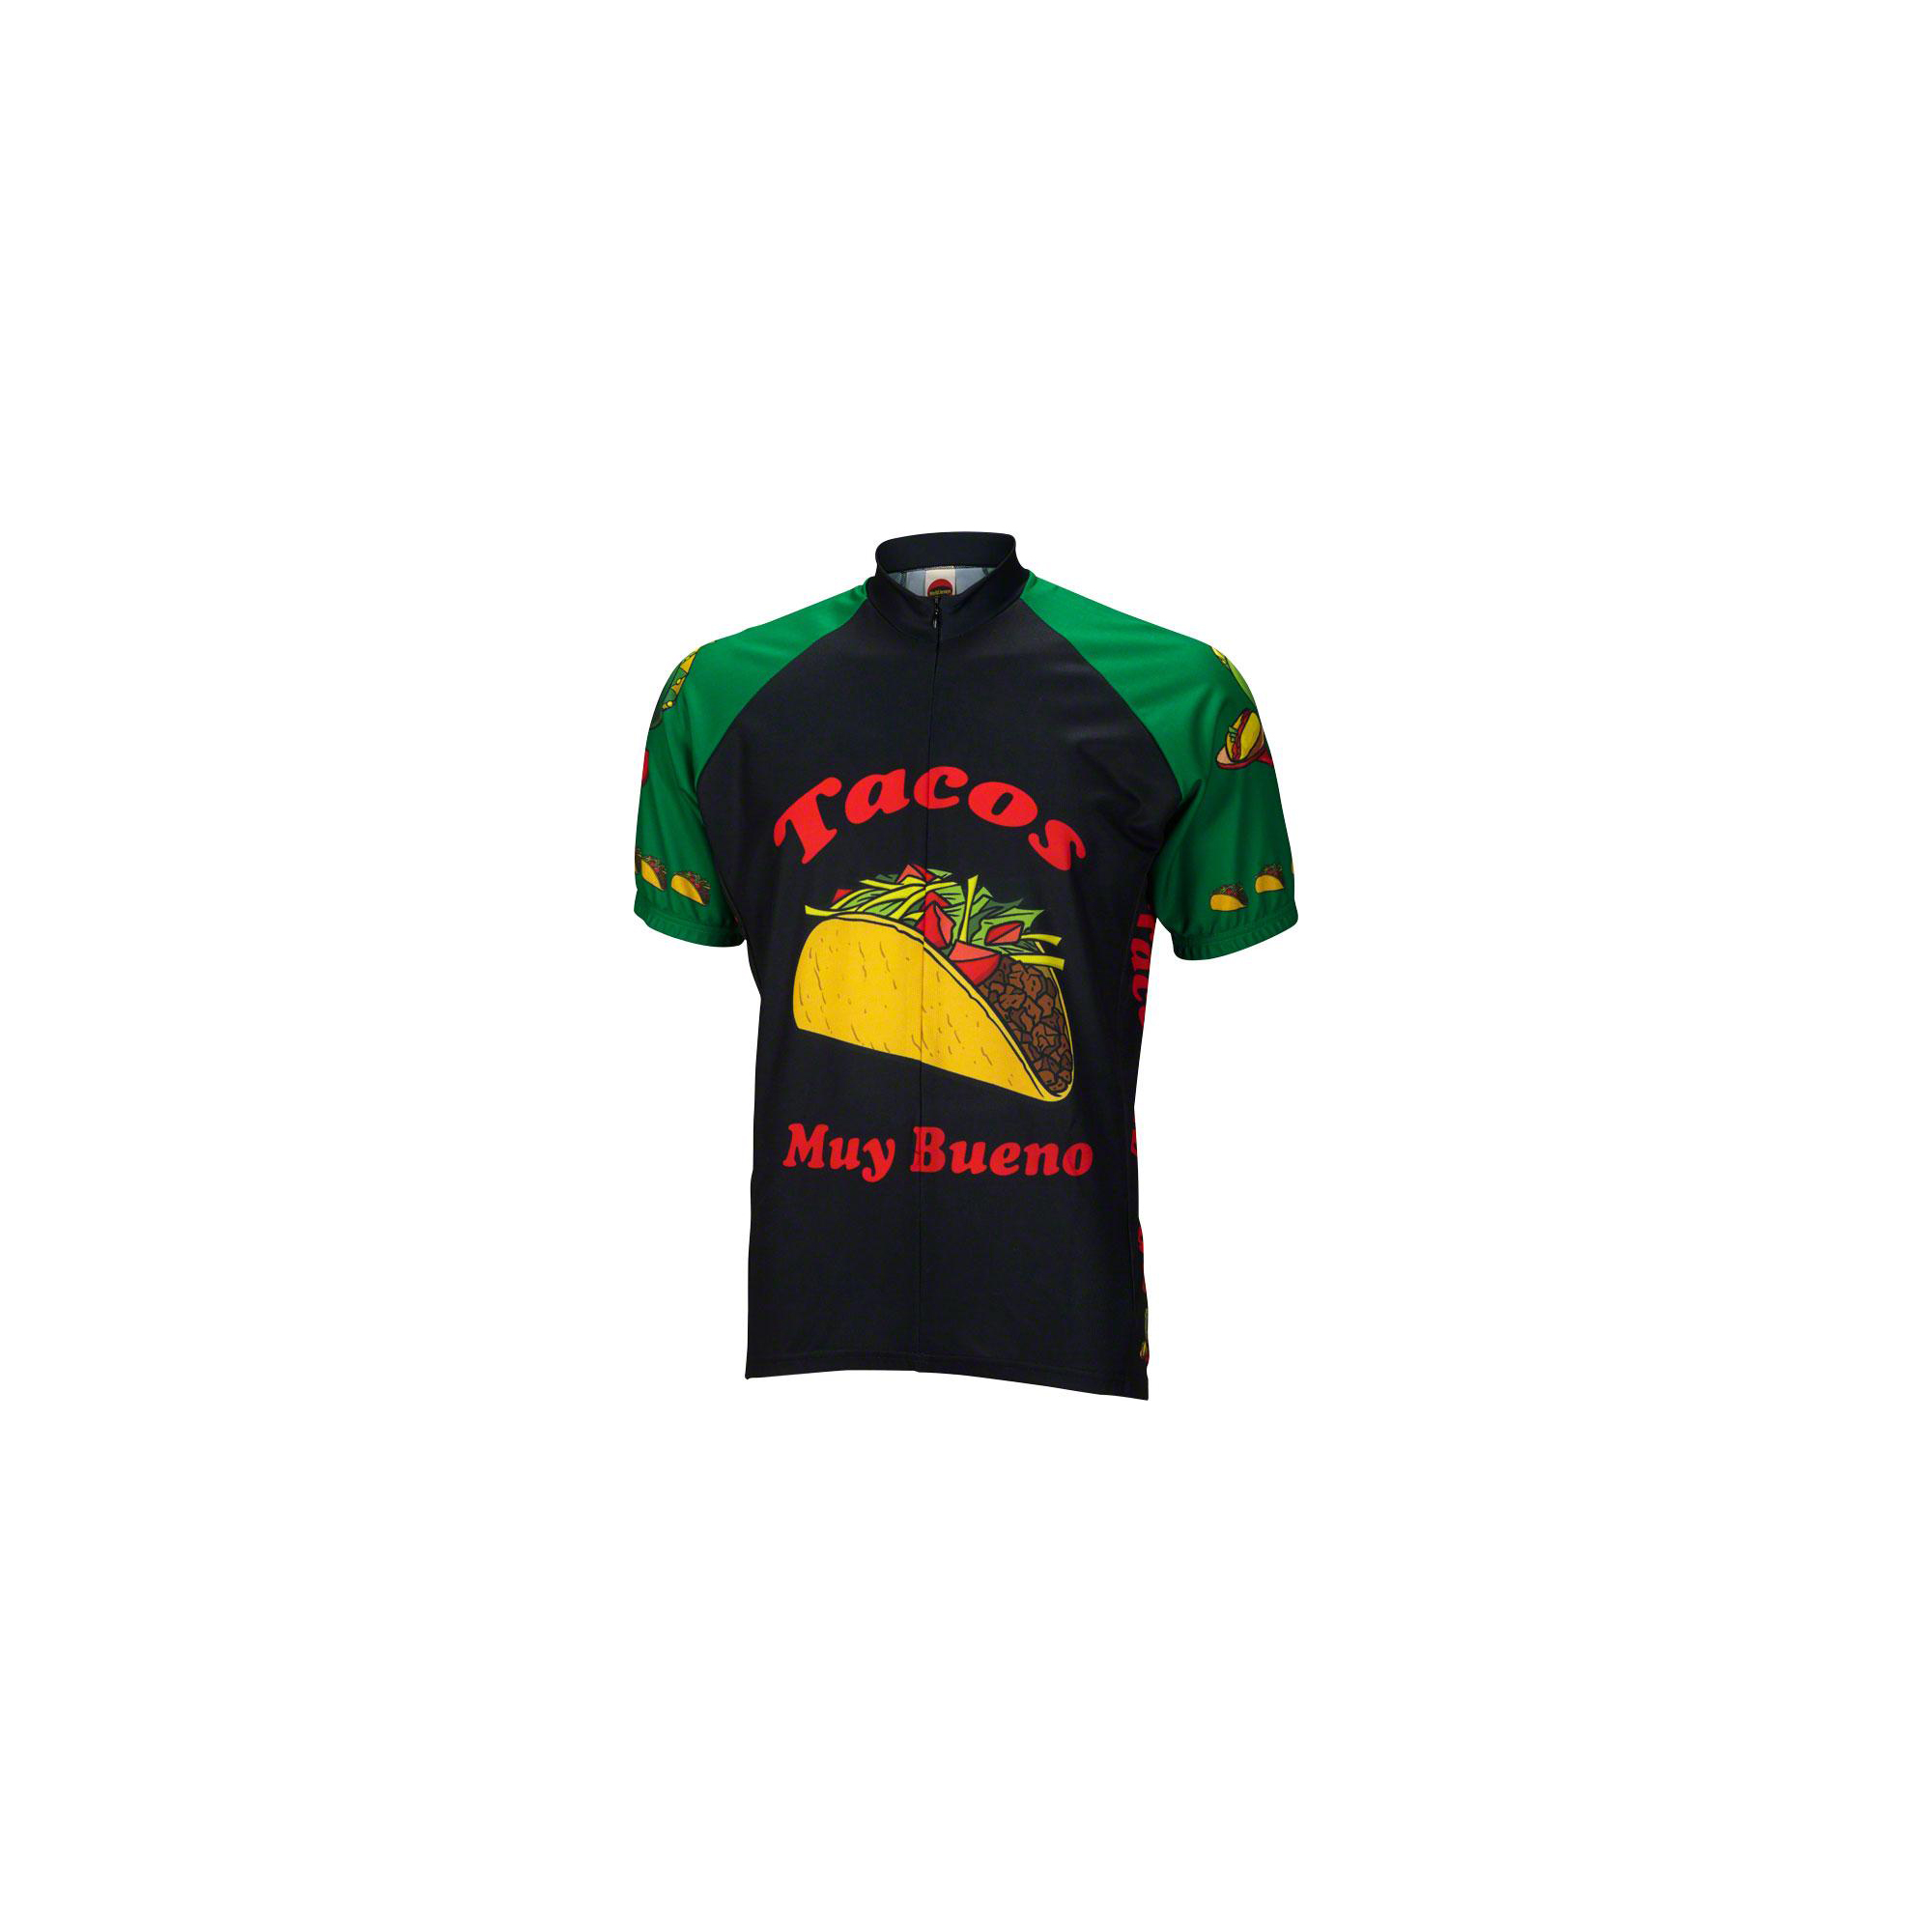 Details about World Jerseys Taco Tuesday Men s Cycling Jersey  Black Green e1ea99702